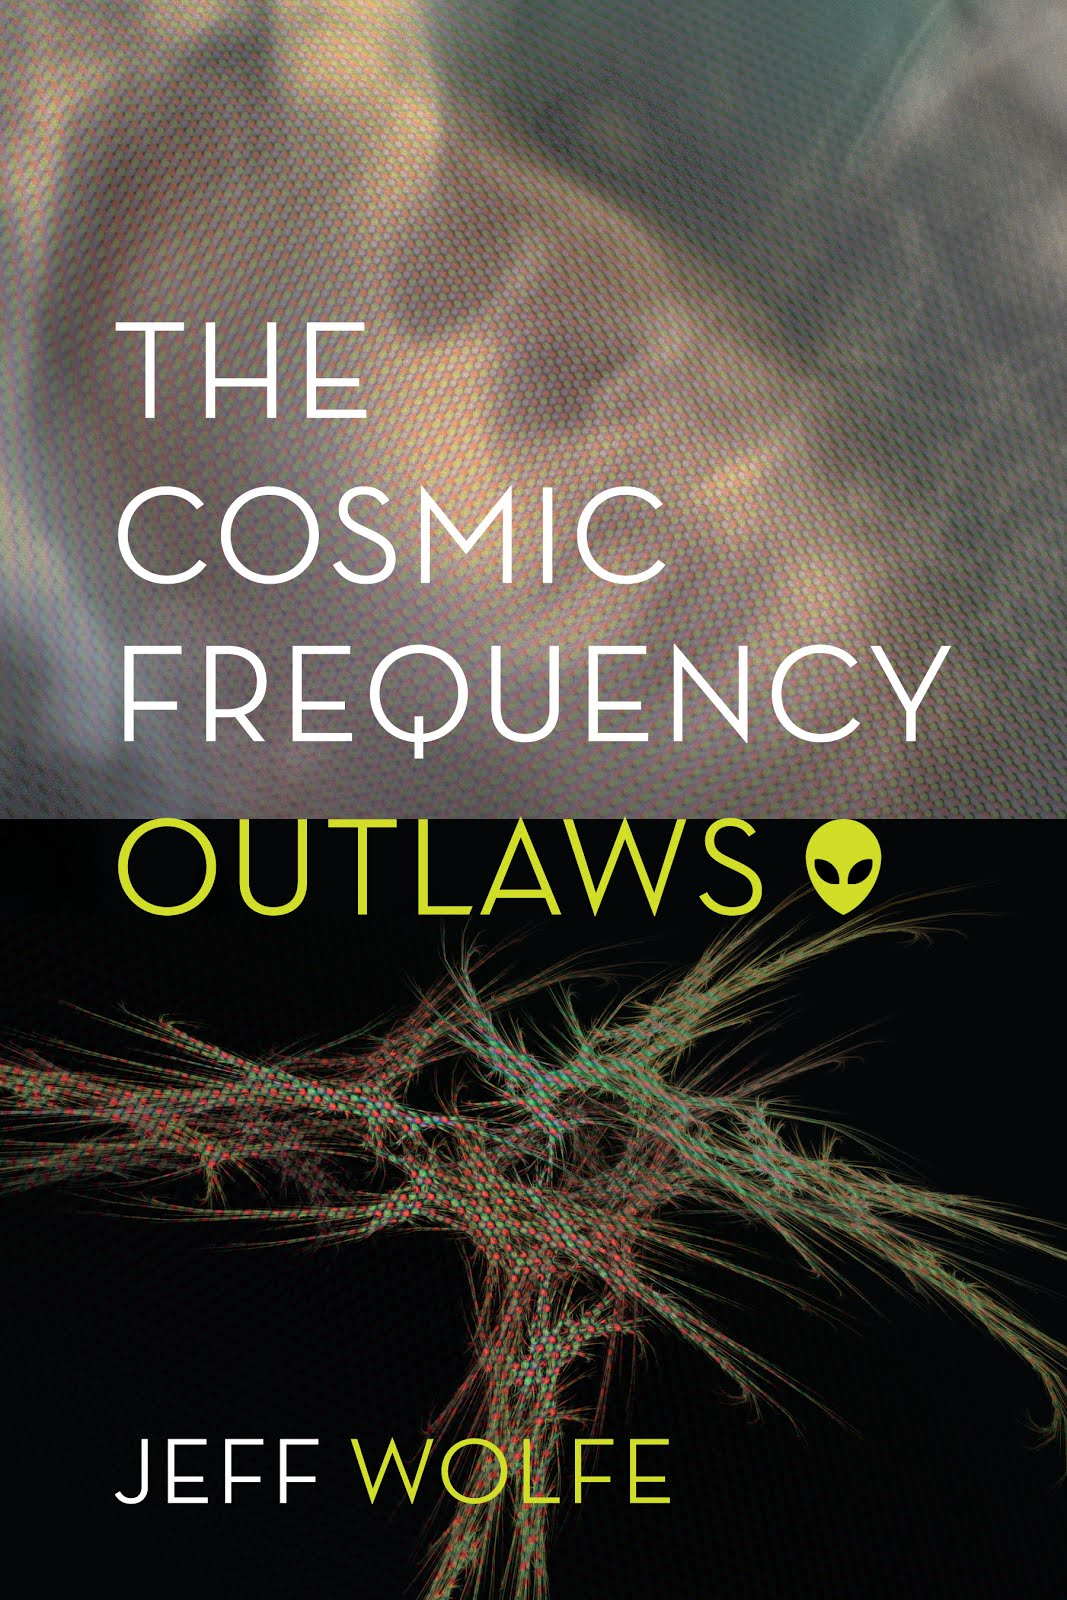 The Cosmic Frequency Outlaws